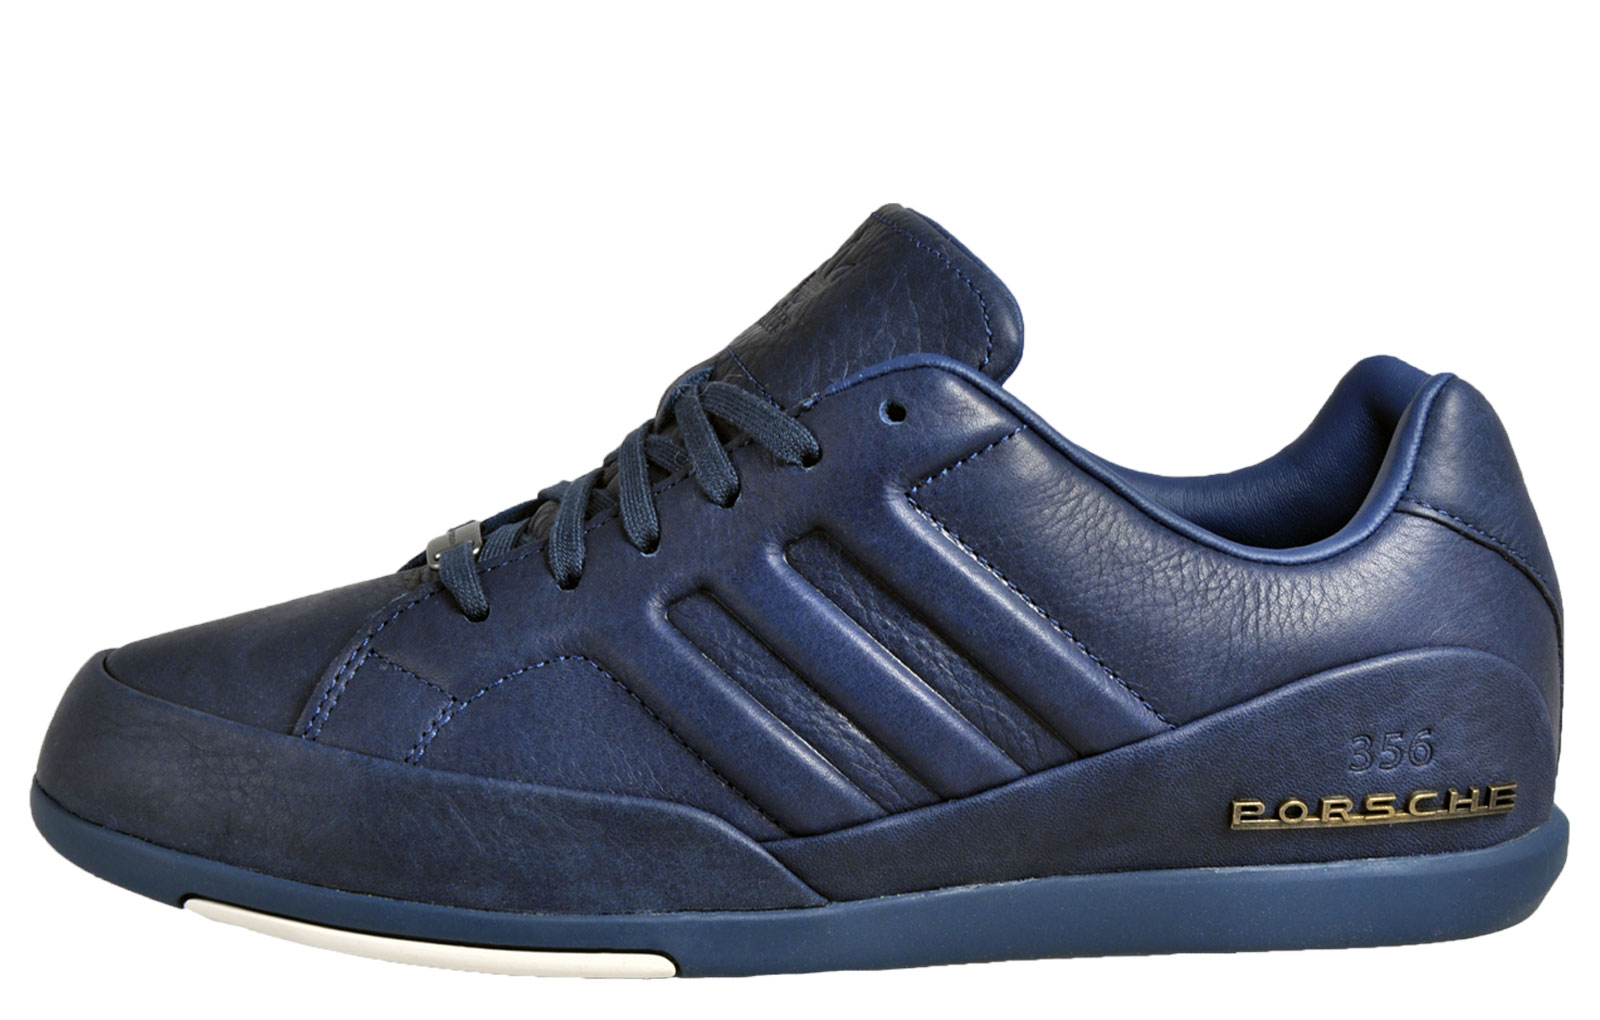 pretty nice 2c6f8 24a20 adidas porsche 356,adidas porsche design 356 blue   blanc chaussures for  homme running shoes a ...